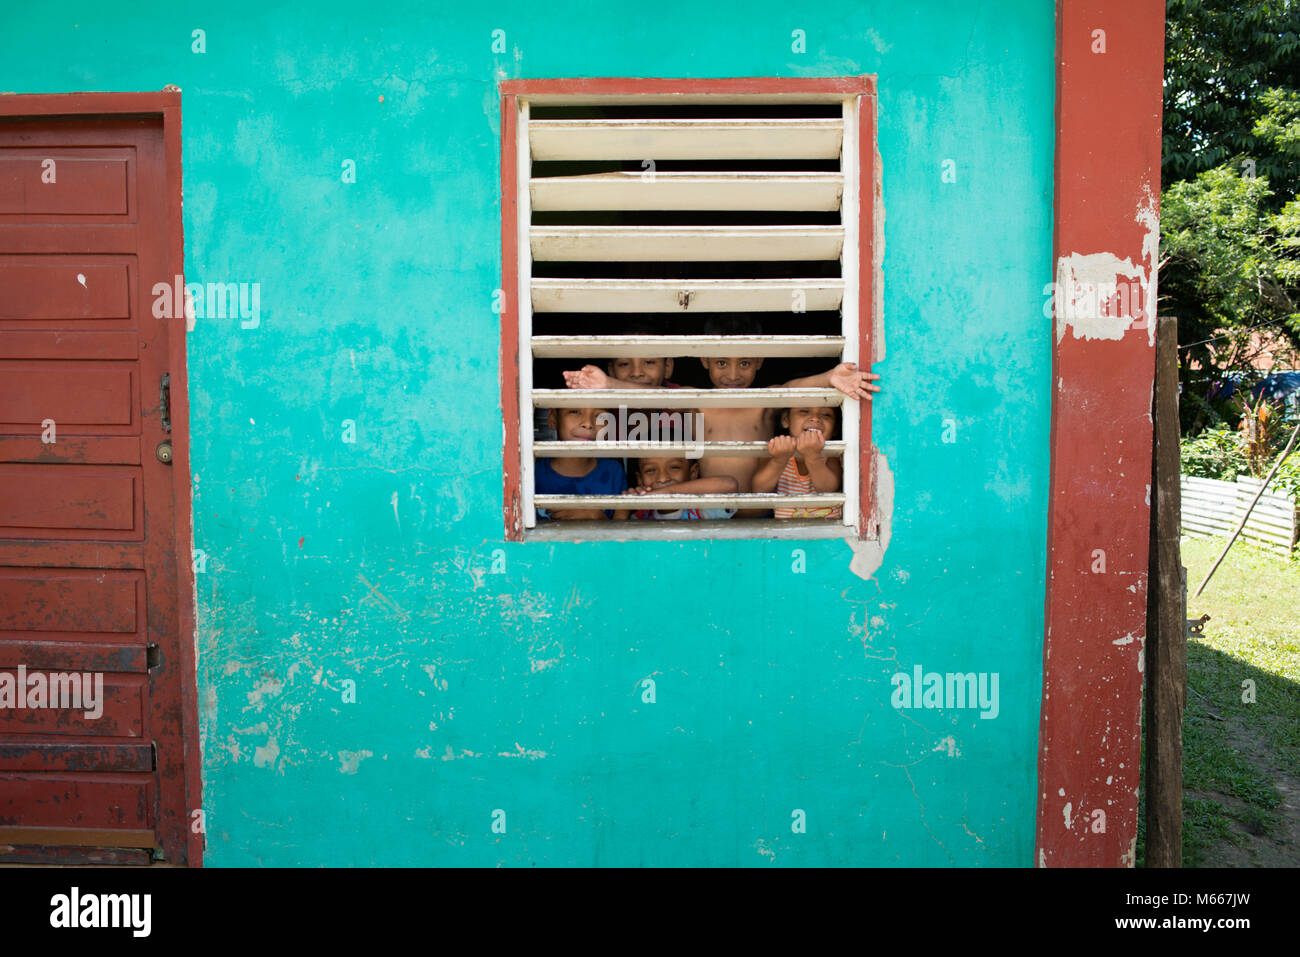 Indigenous Yucatec Maya children in their house, looking through a window. San Jose Succotz, Cayo District, Belize. - Stock Image